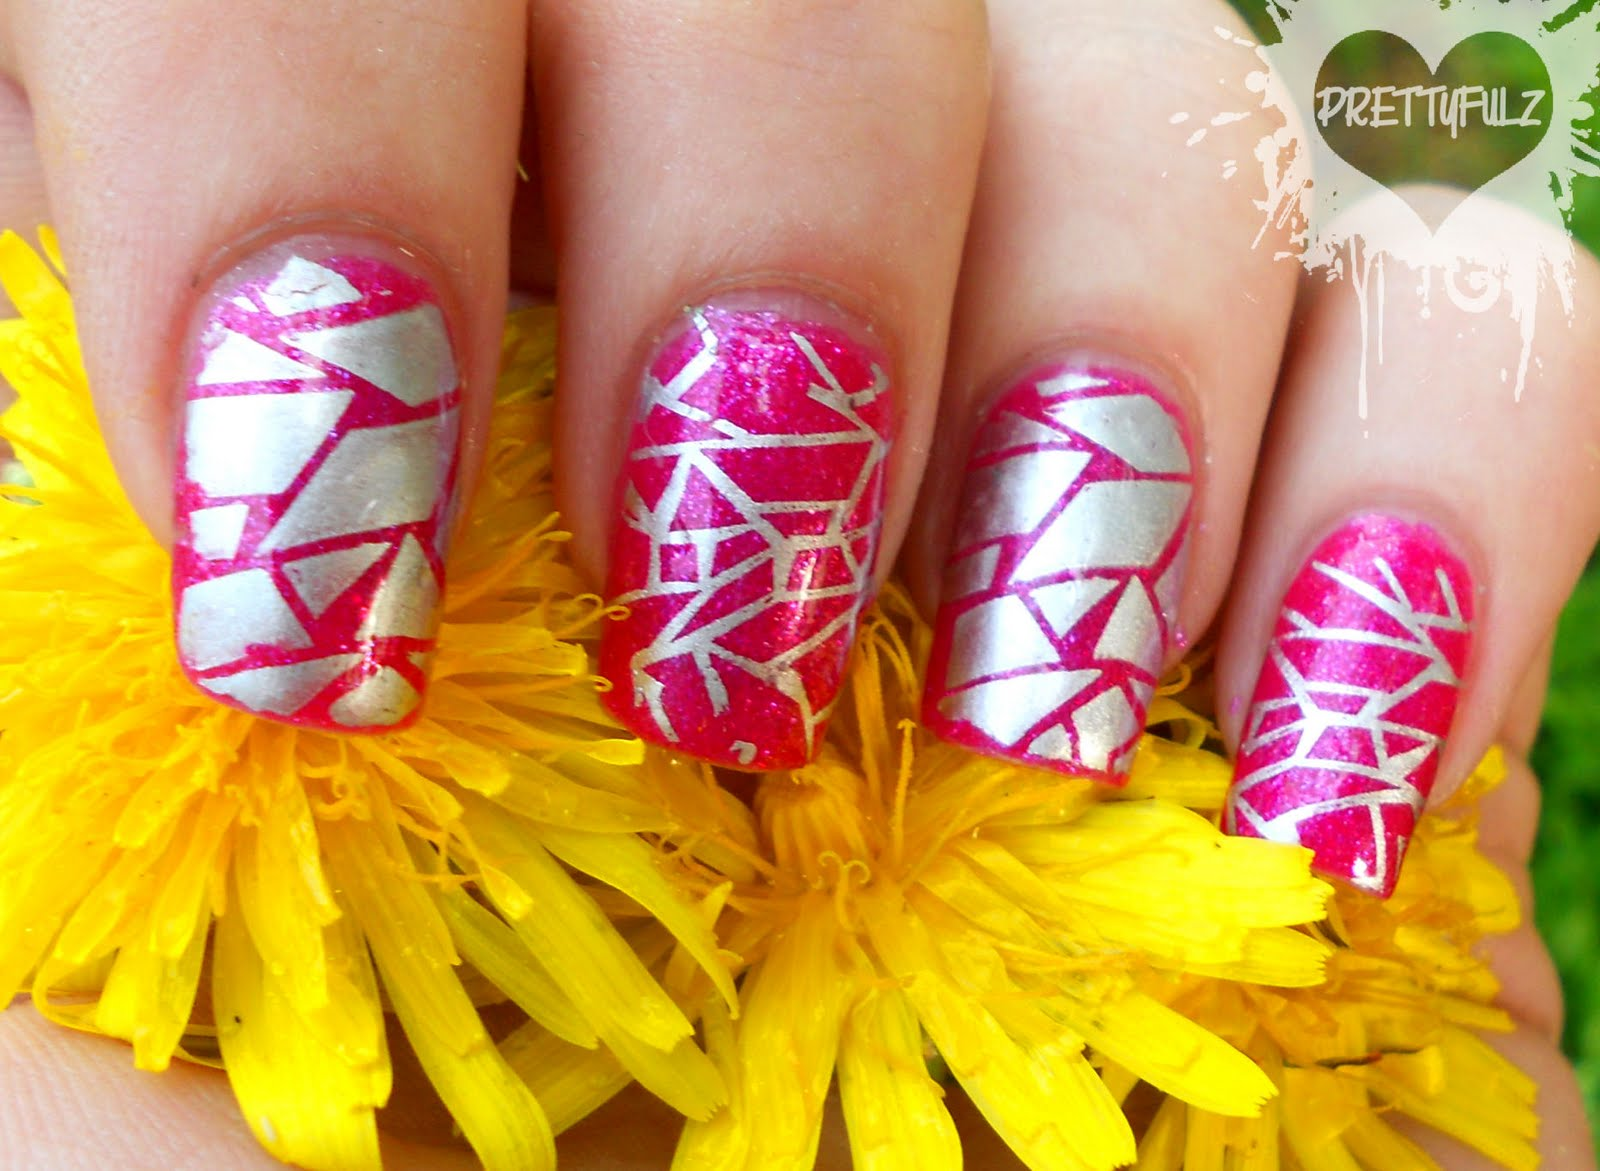 Prettyfulz: Pink Wednesdays | Abstract Pink & Silver Nail Art Design